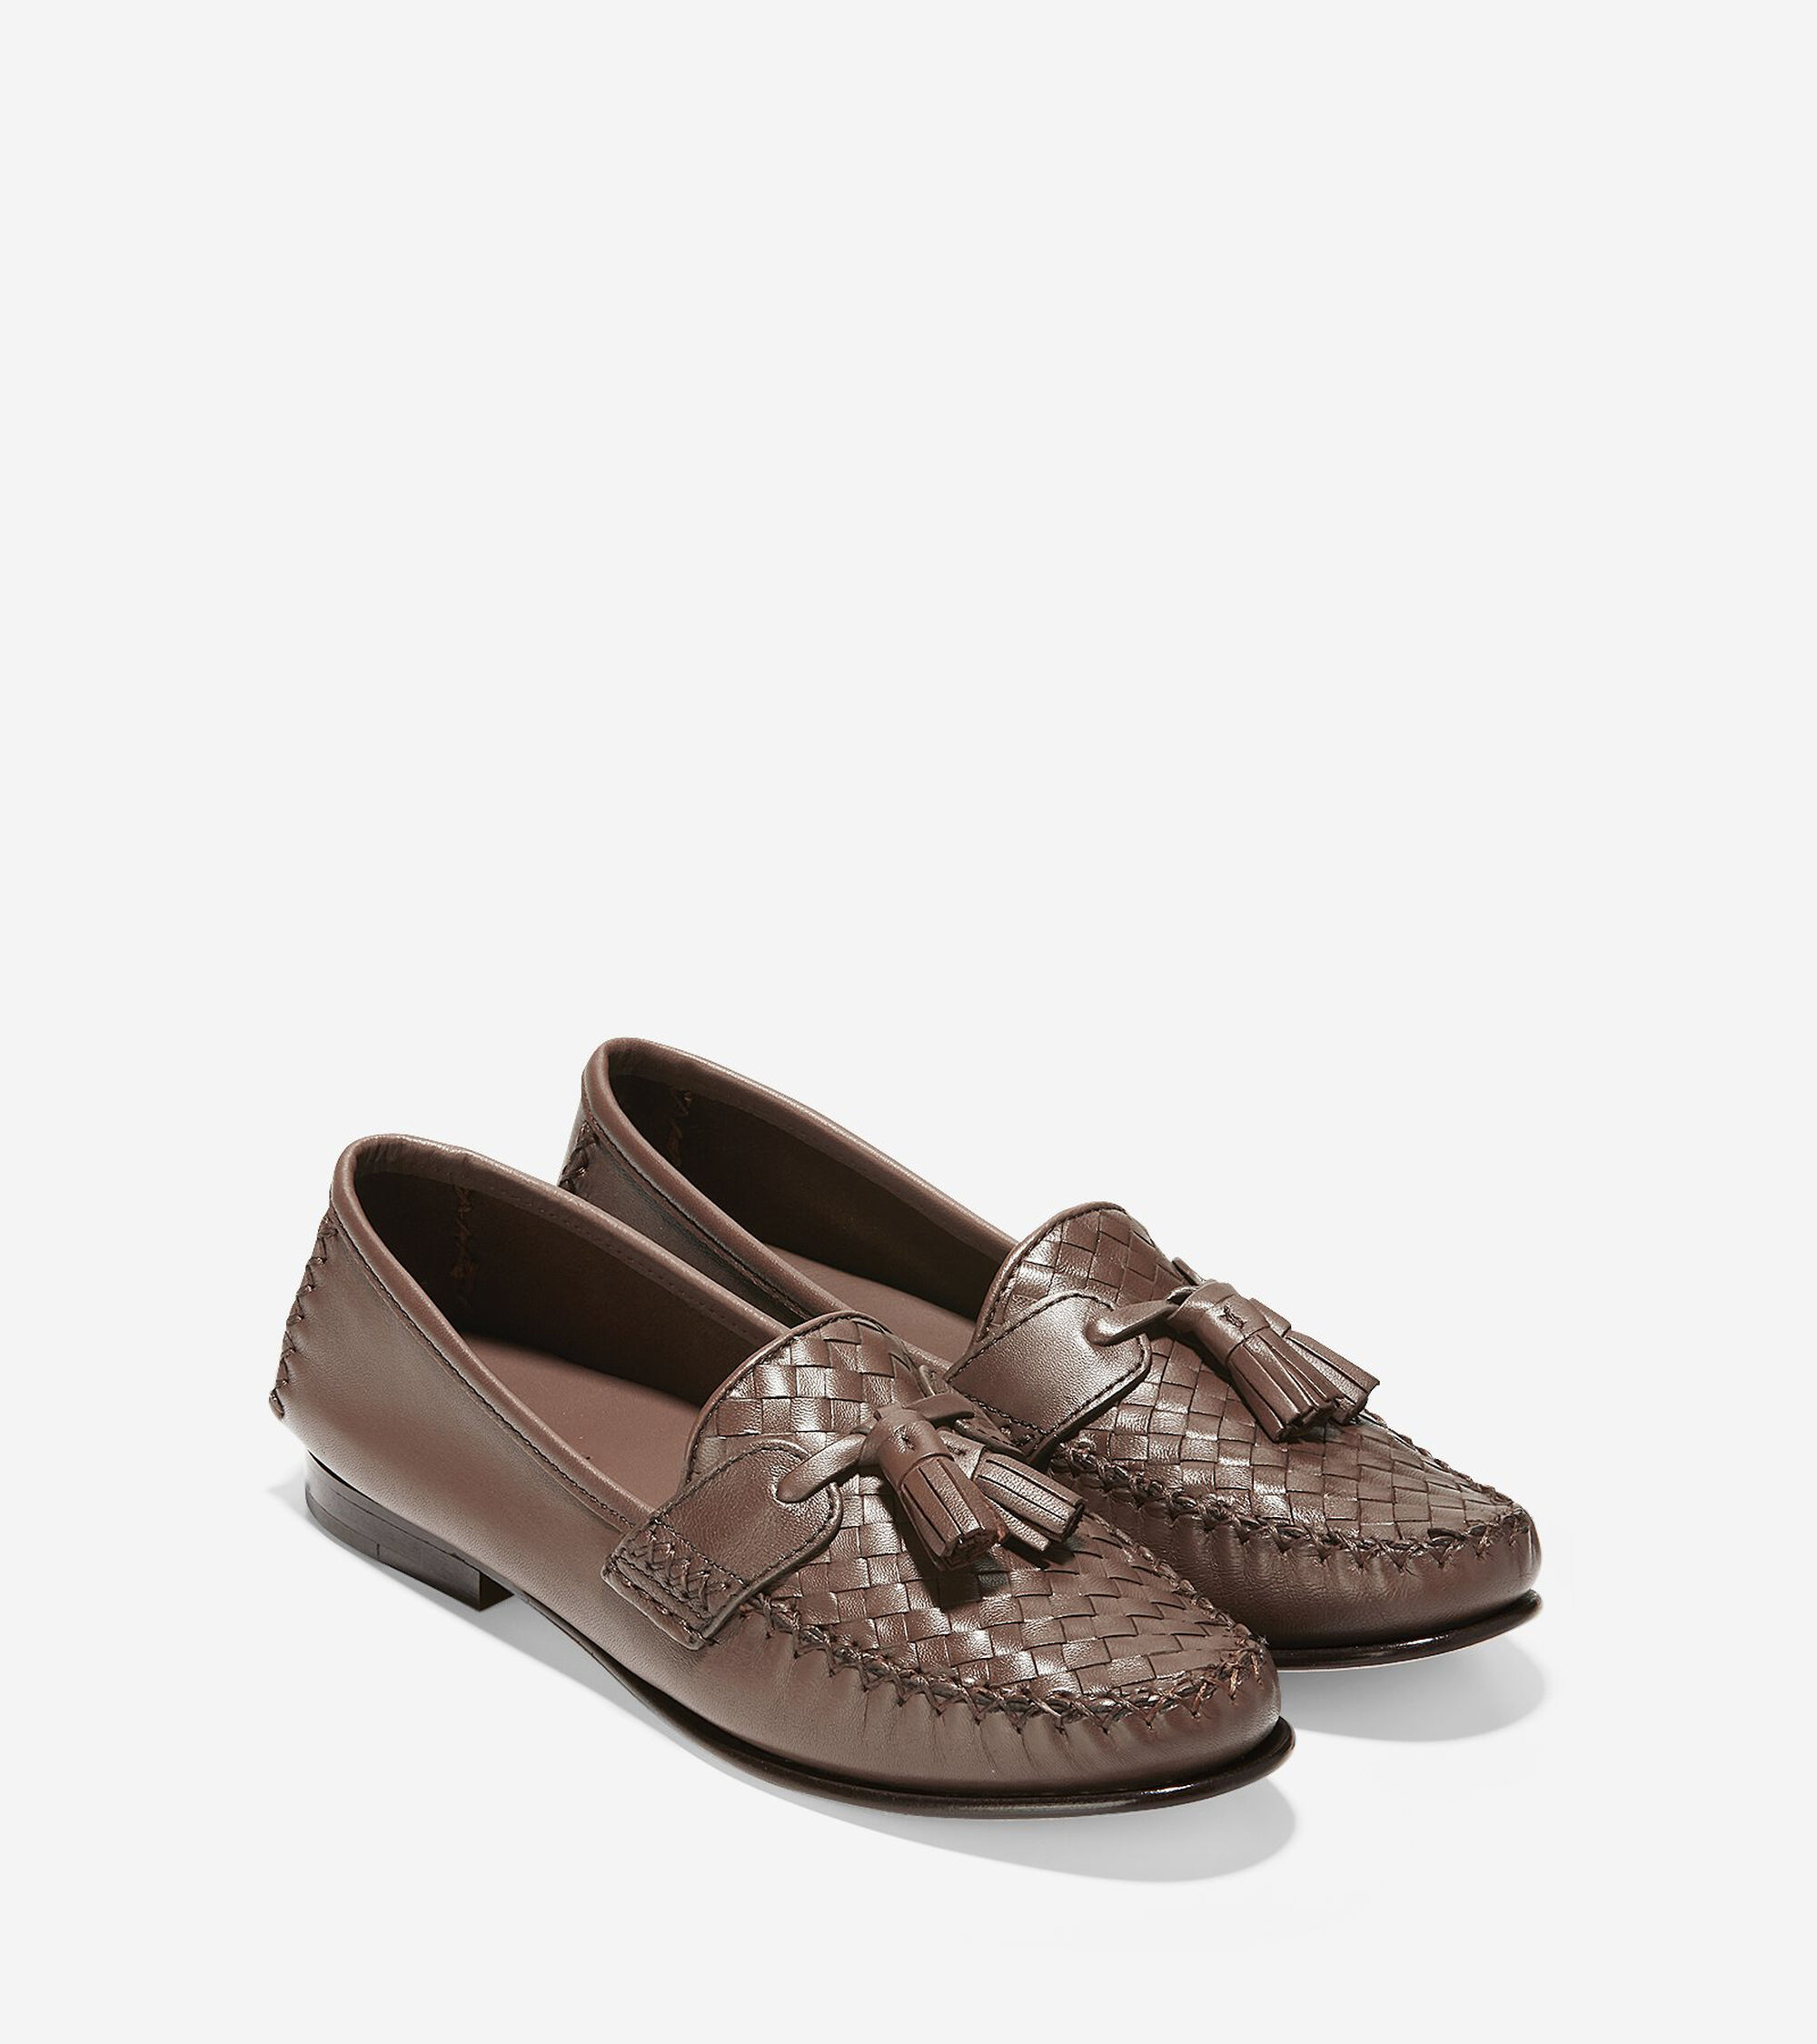 aba83bc0bf3 Women s Jagger Soft Weave Loafers in Harvest Brown